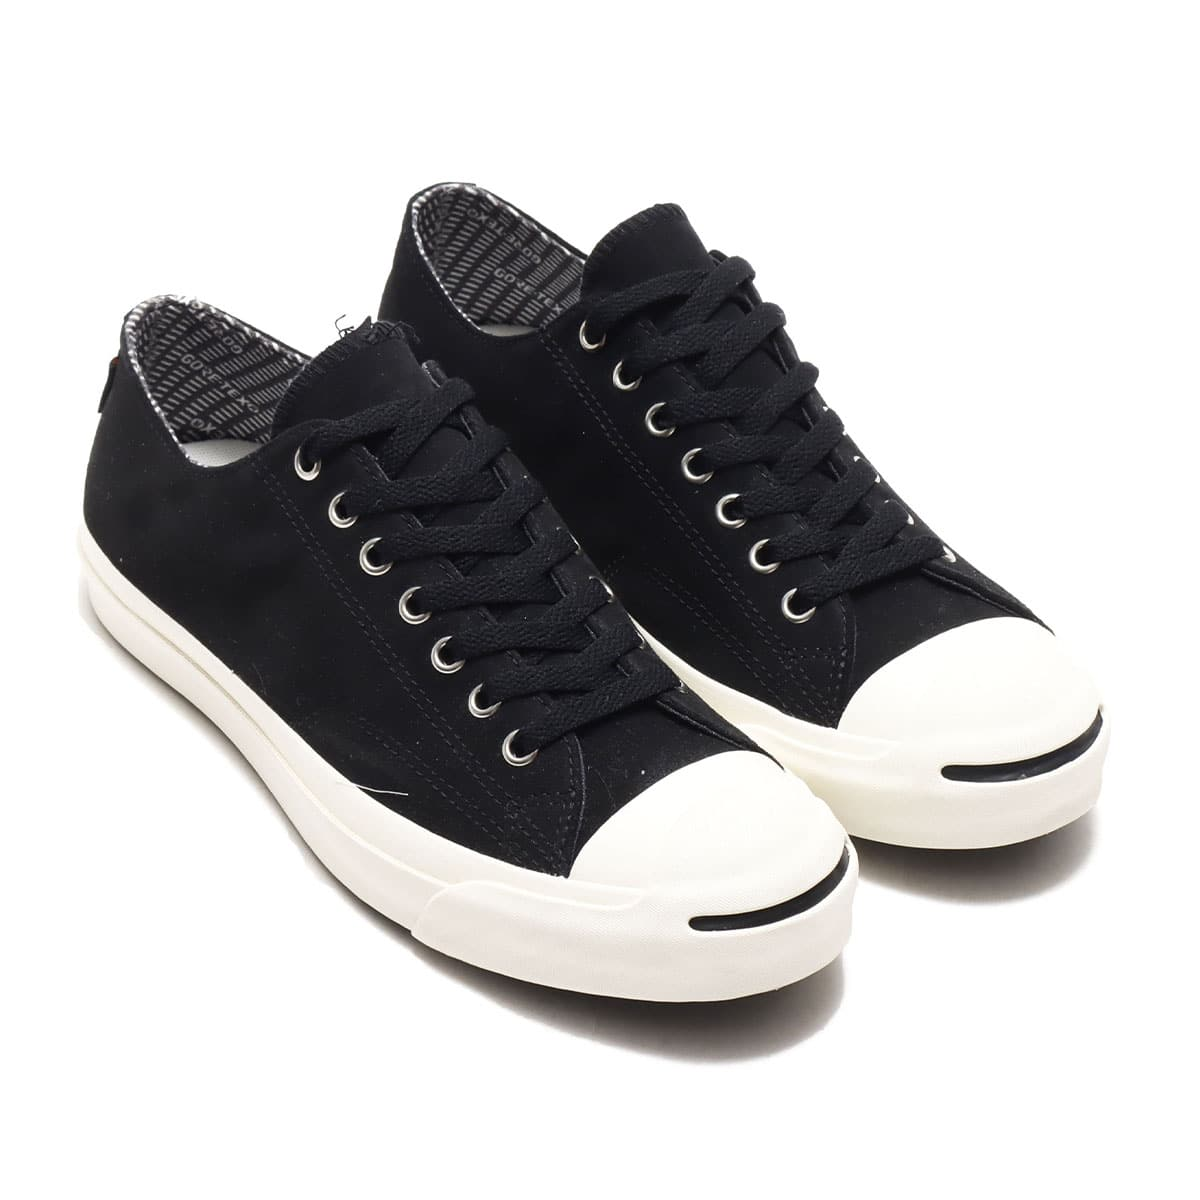 CONVERSE JACK PURCELL GORE-TEX SUEDE RH BLACK 20FW-I_photo_large